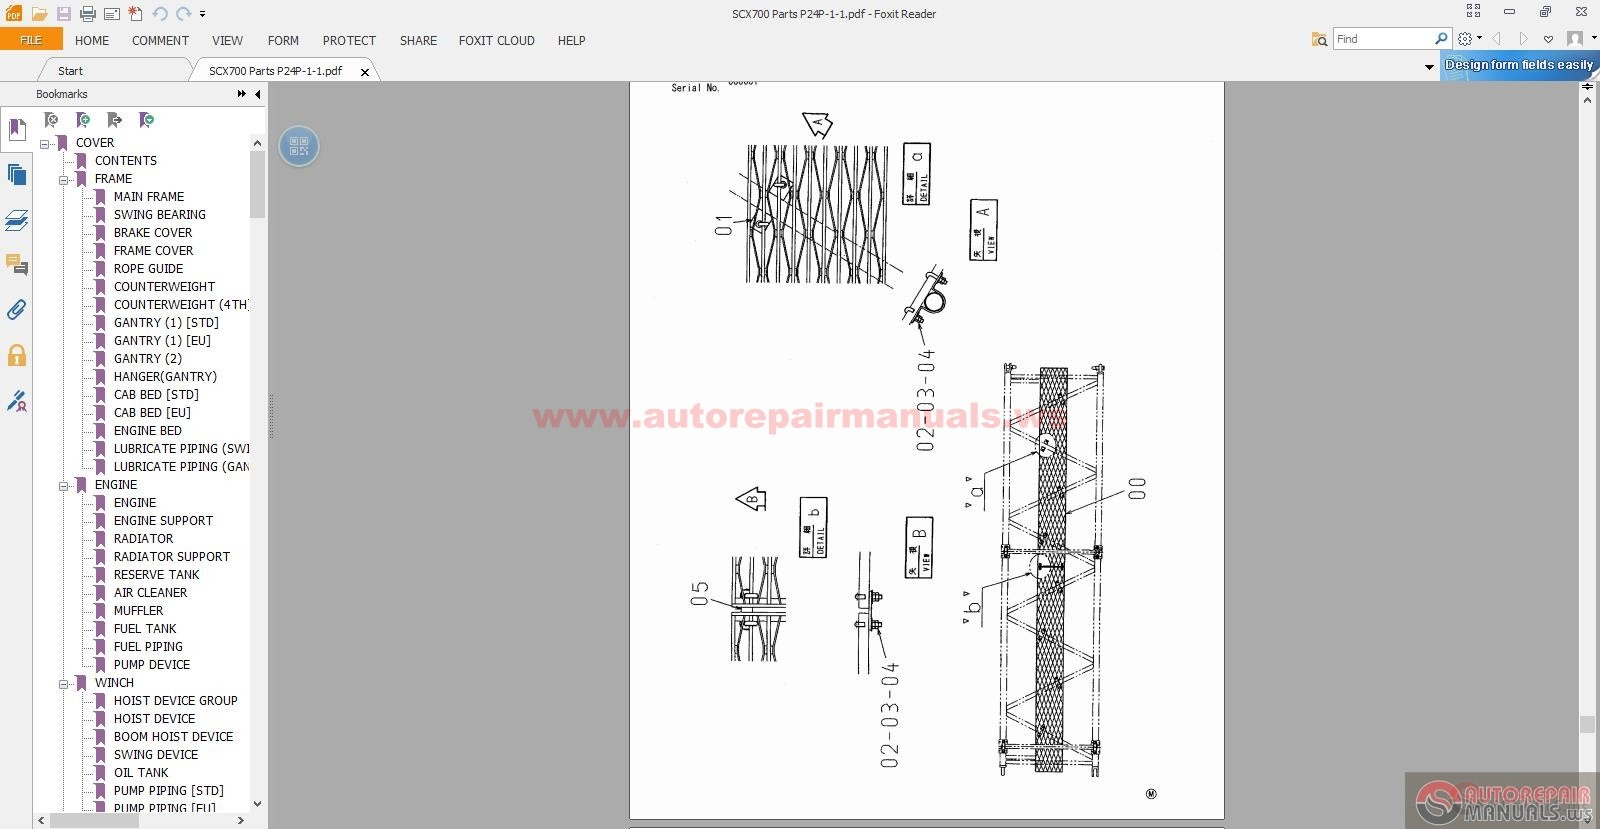 Hitachi Sumitomo Crawler Crane Scx700 Parts Manual